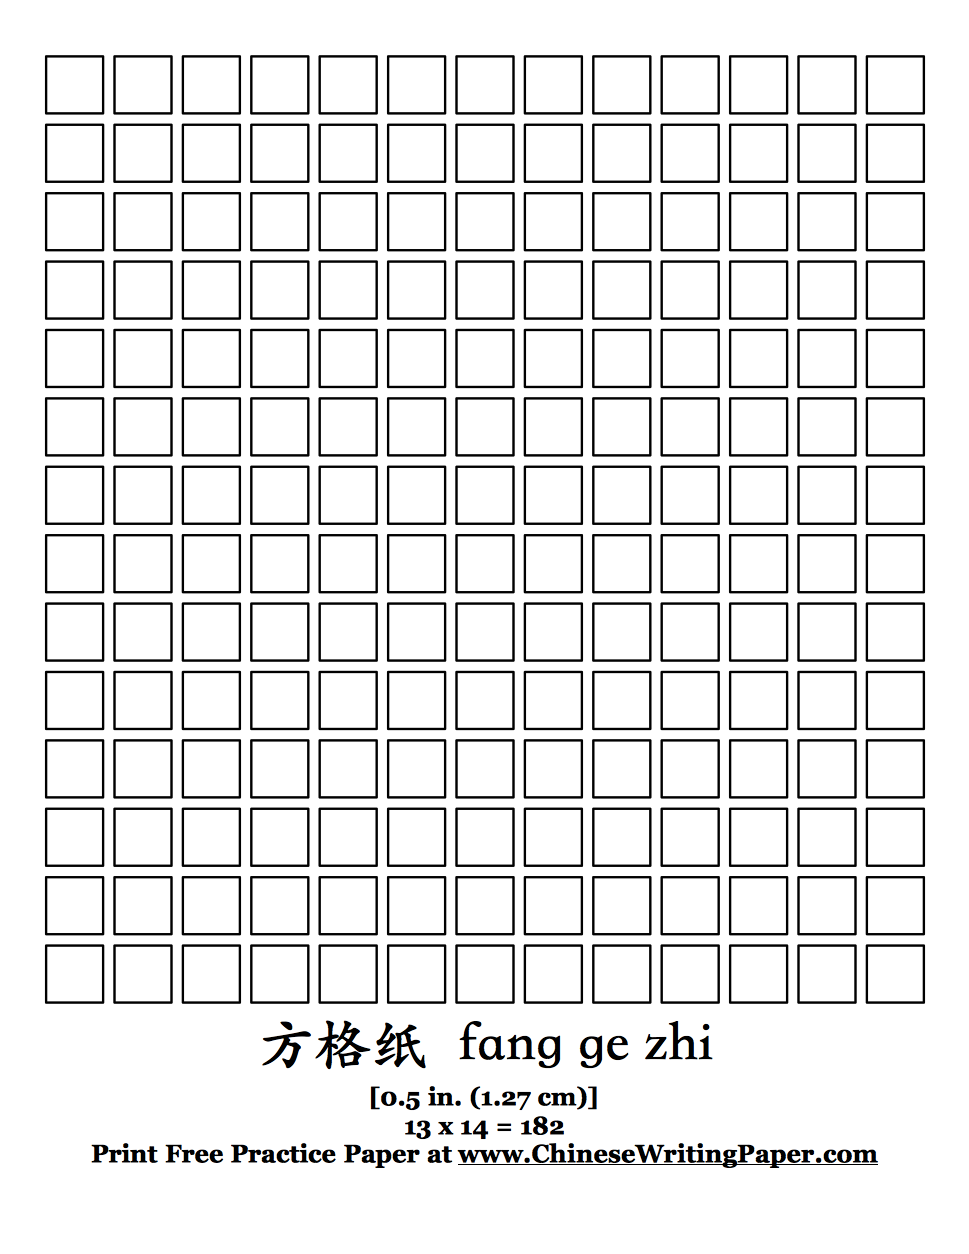 buy chinese writing paper